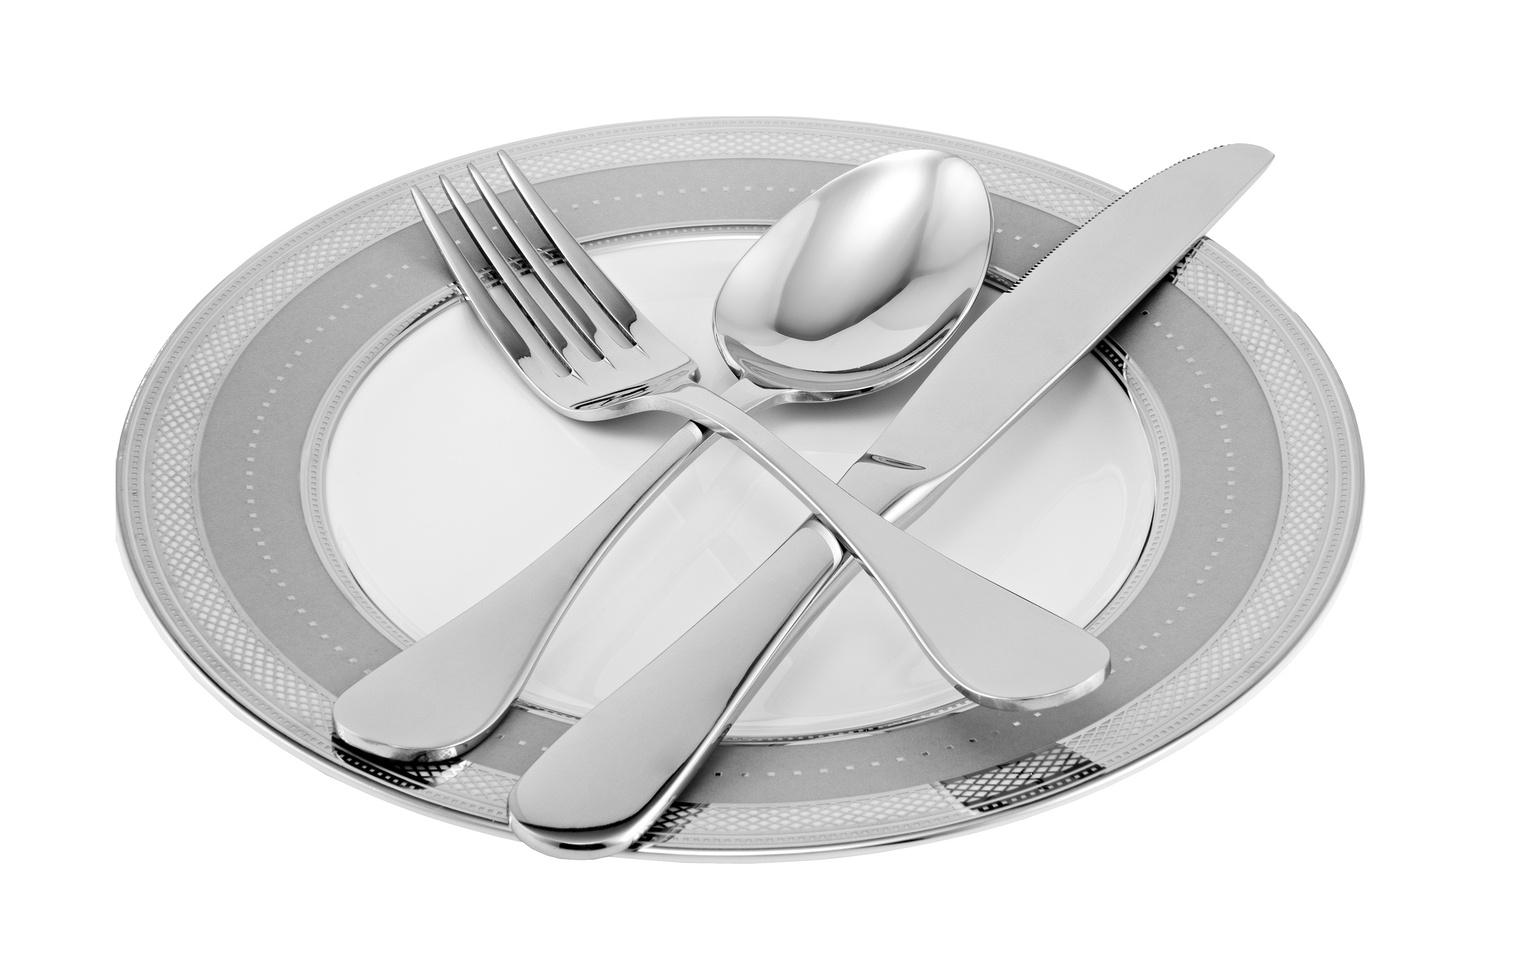 Flatware Products